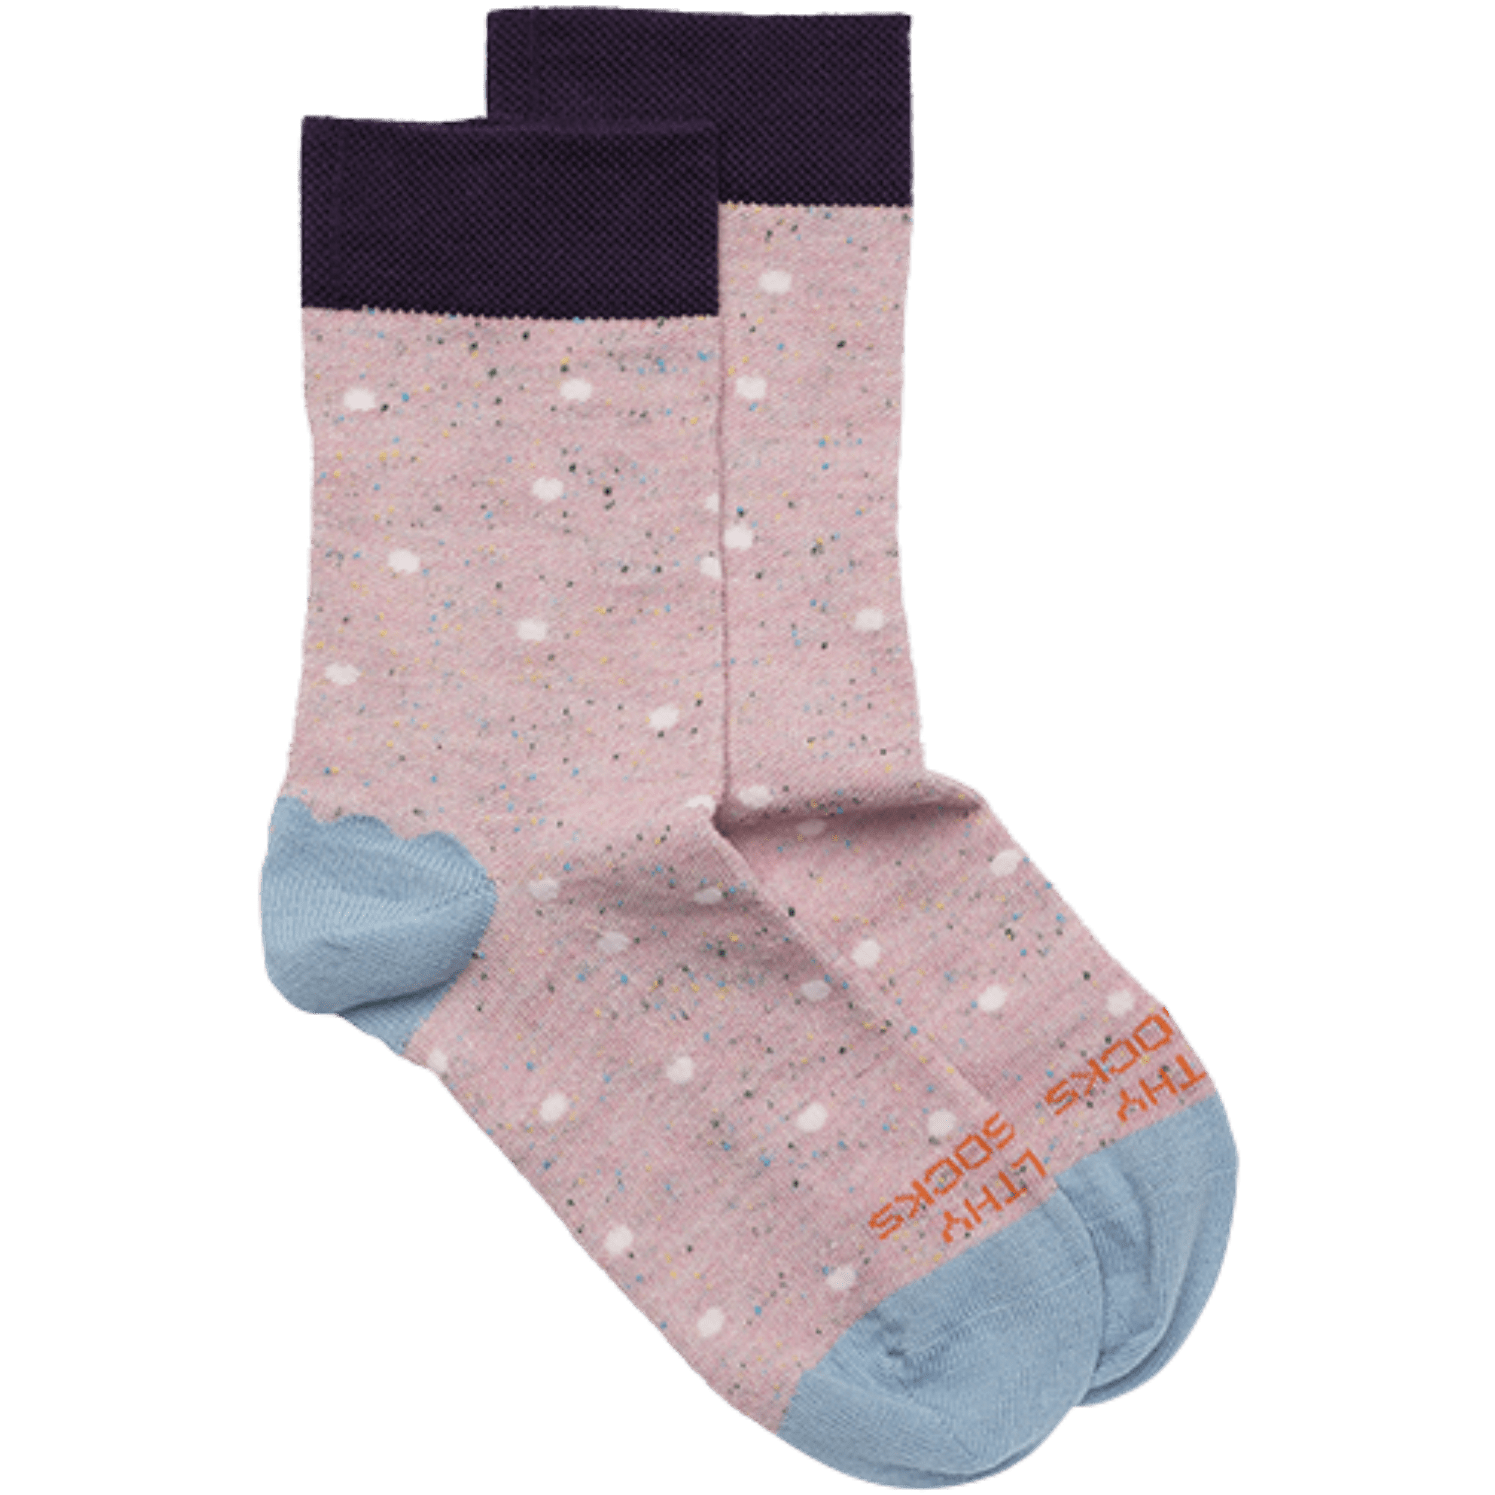 Minnow ladies and women's Healthy Seas socks, upcycled from ghost fishing nets, ecological and sustainable